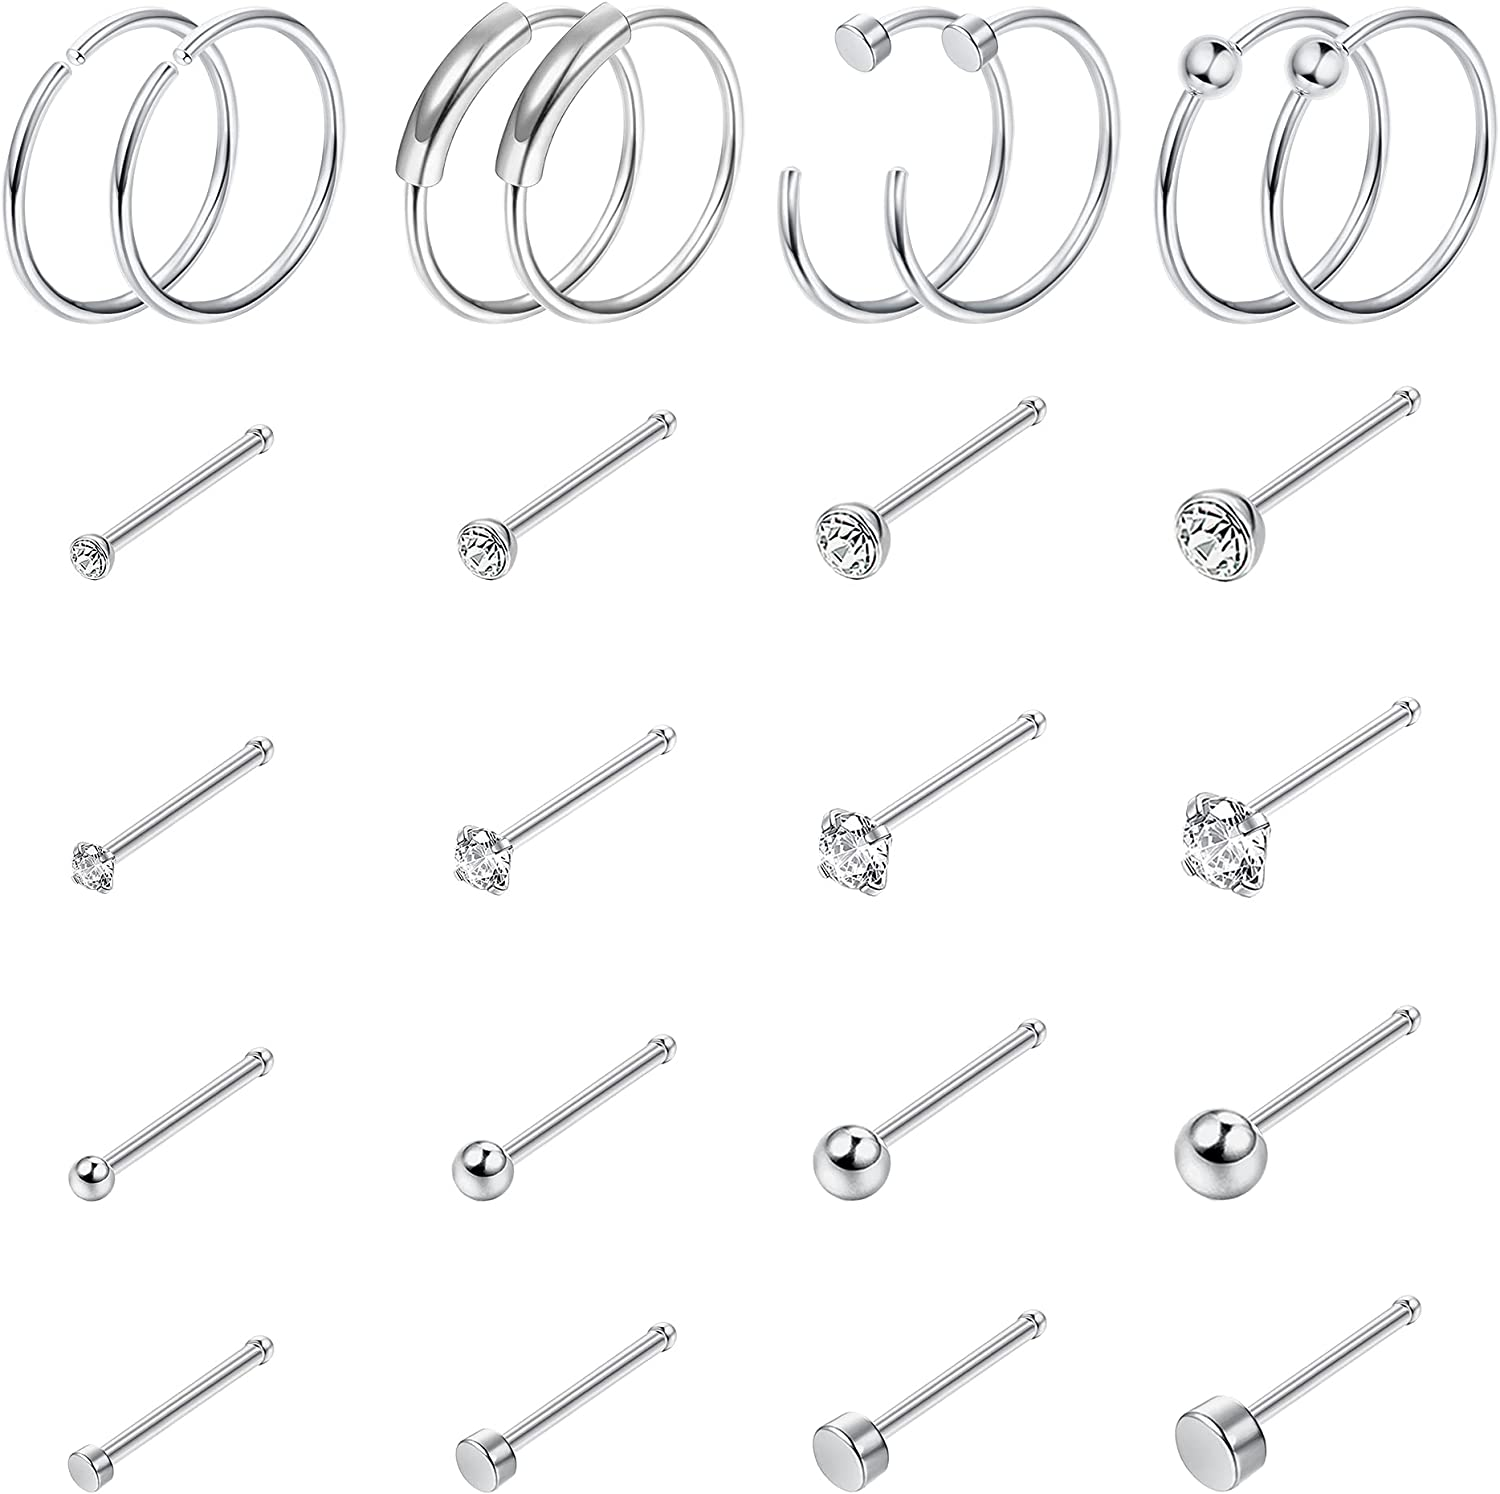 Drperfect 24PCS Nose Ring Studs, Stainless Steel Nose Rings Hoop Bone Screw L-Shaped Nose Studs Tragus Cartilage Helix Earrings Hoop Nose Piercing Jewelry for Women Men